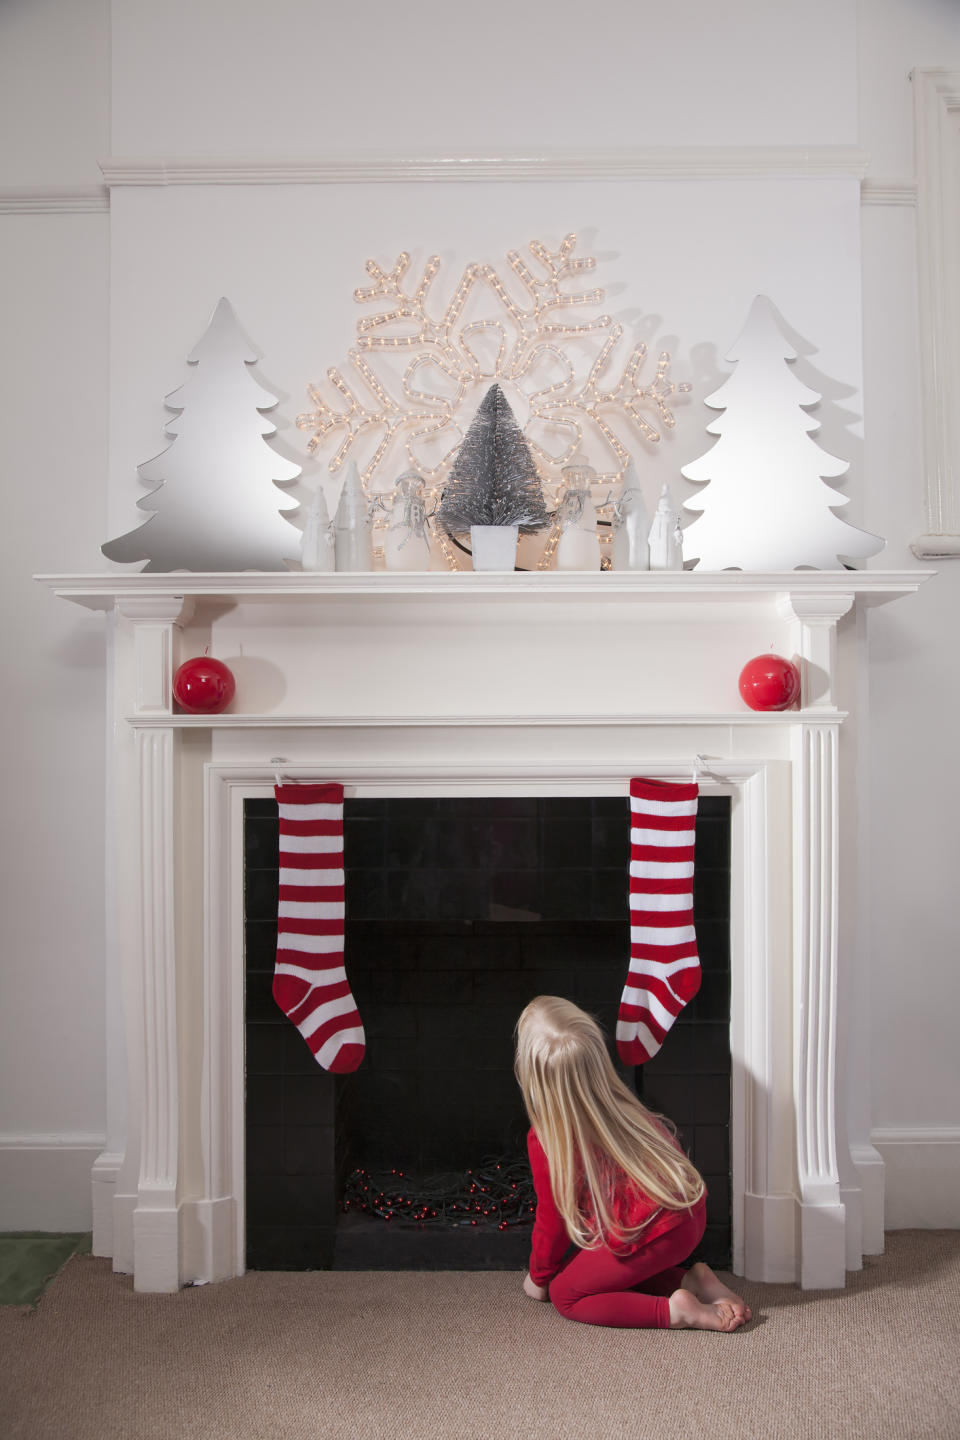 Should parents tell children the truth about Father Christmas? [Photo: Getty]